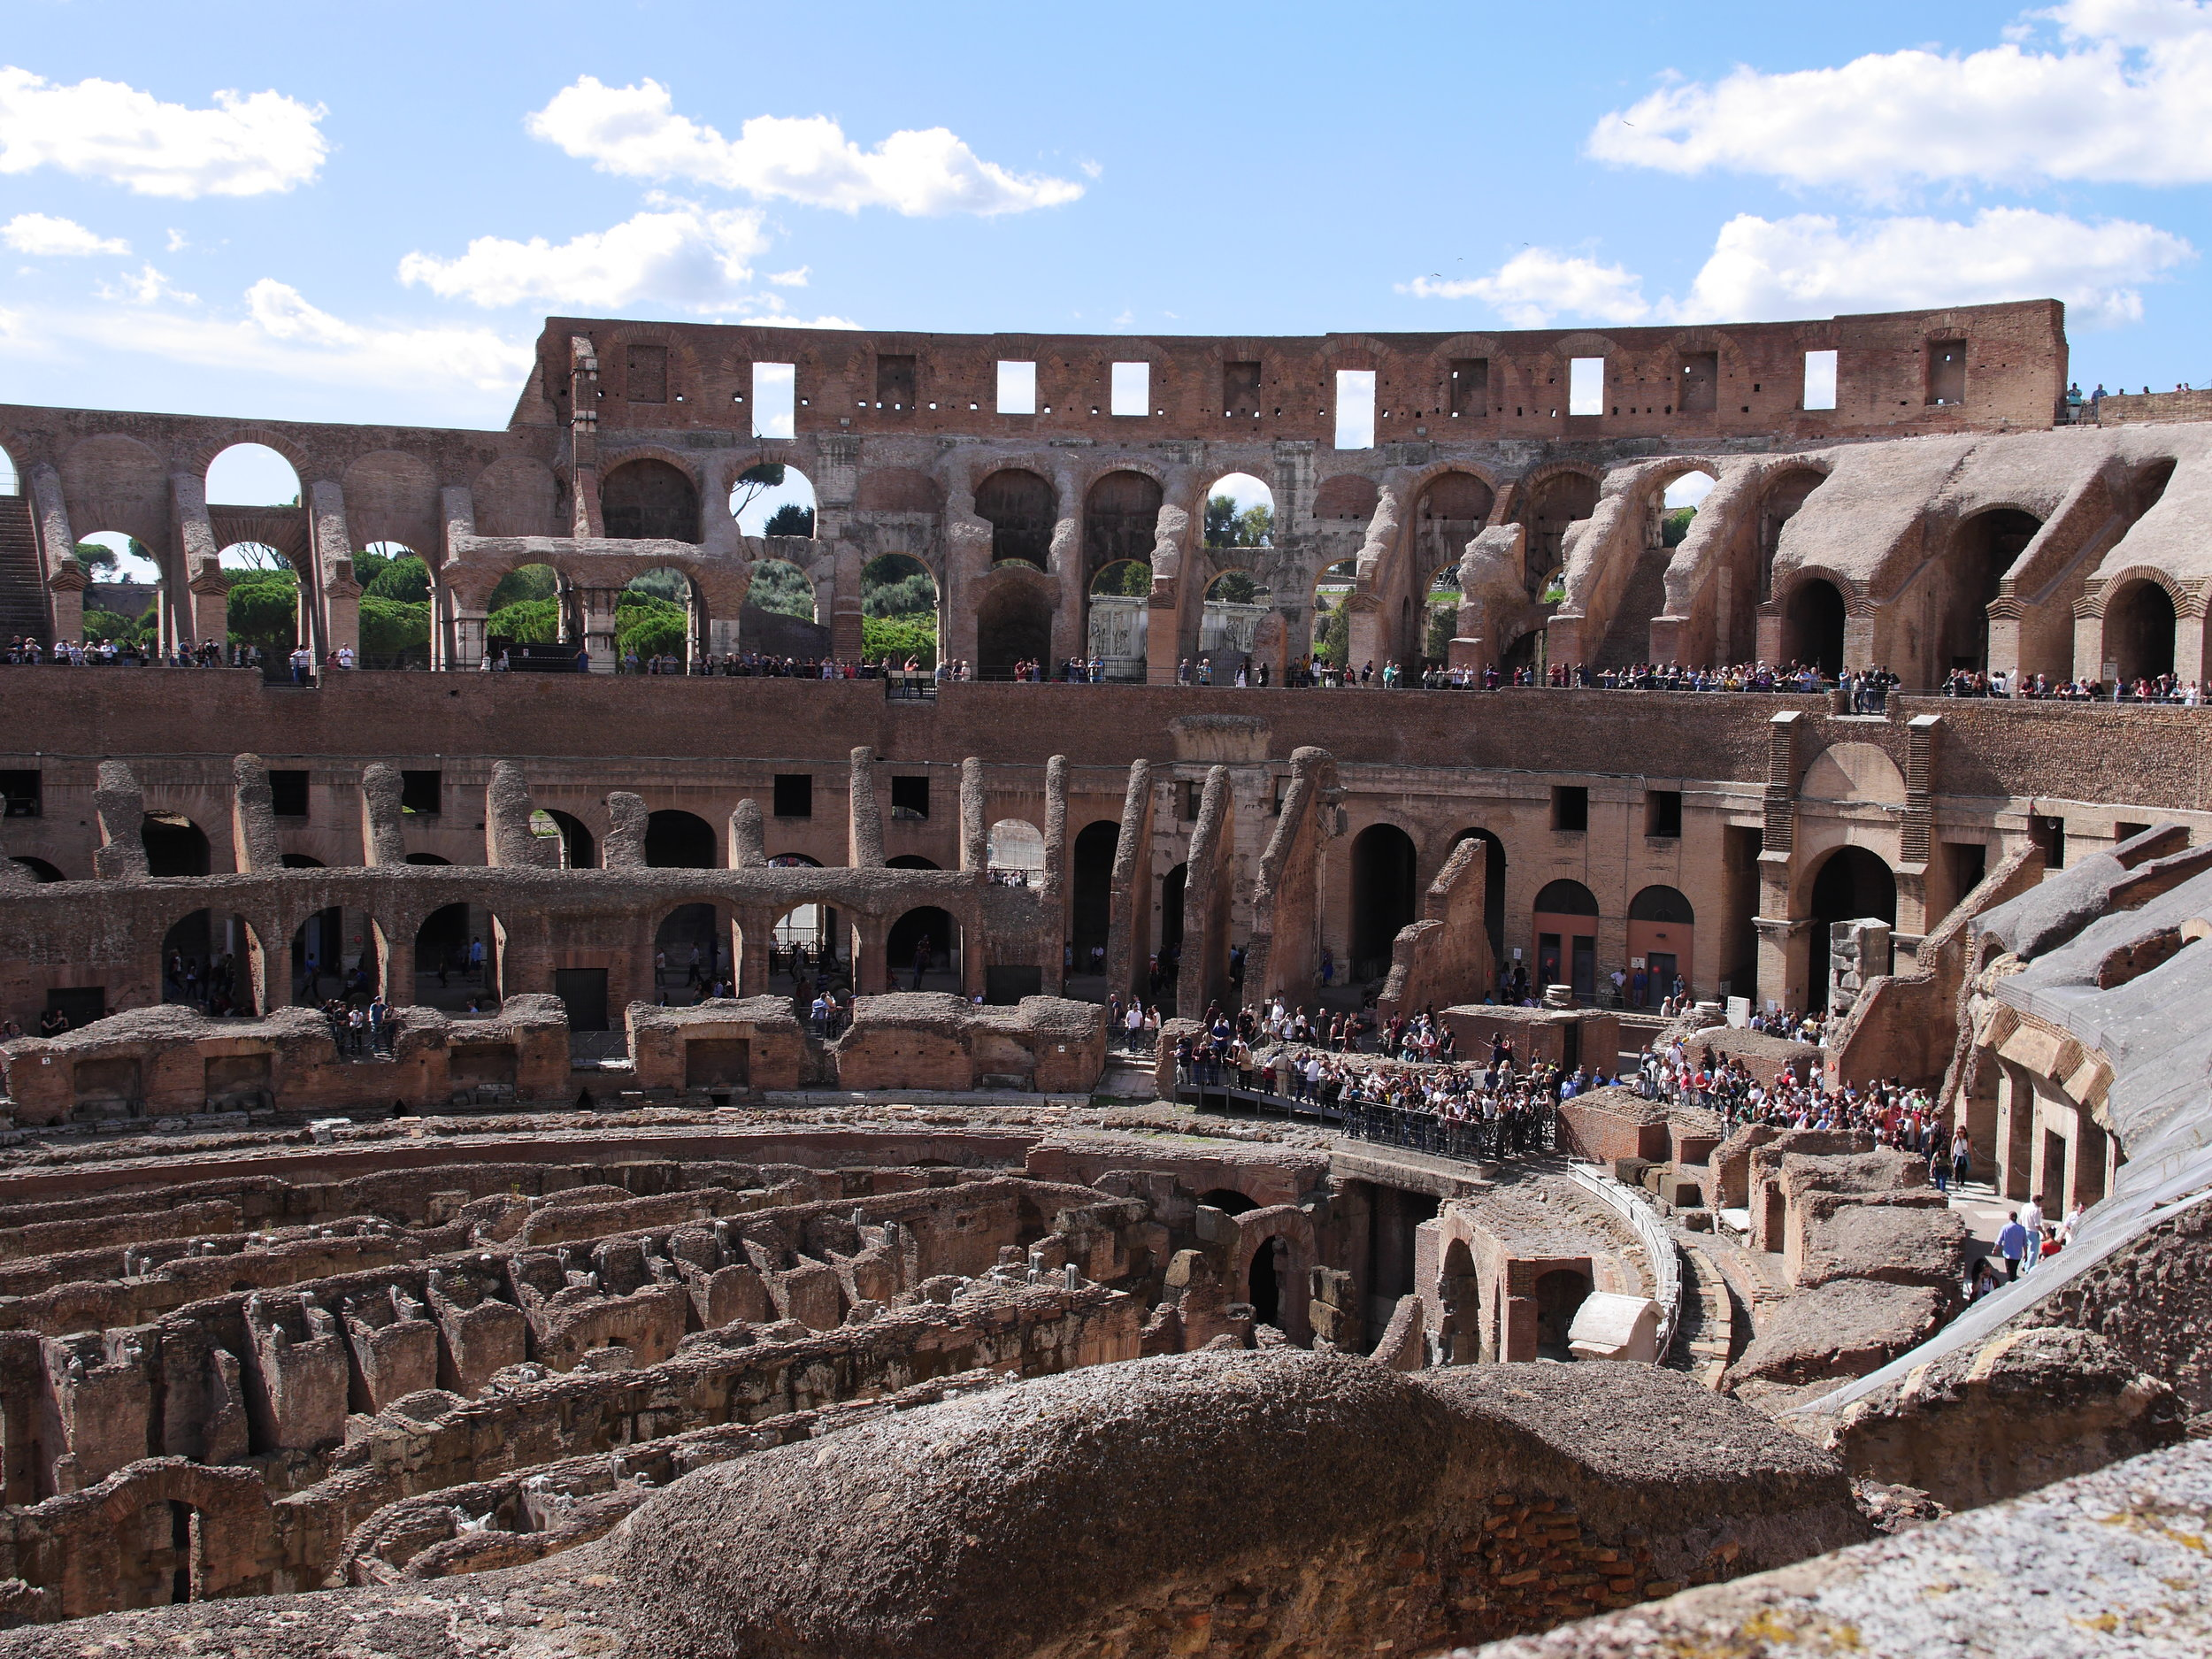 Inside of the Coliseum in Rome, Italy